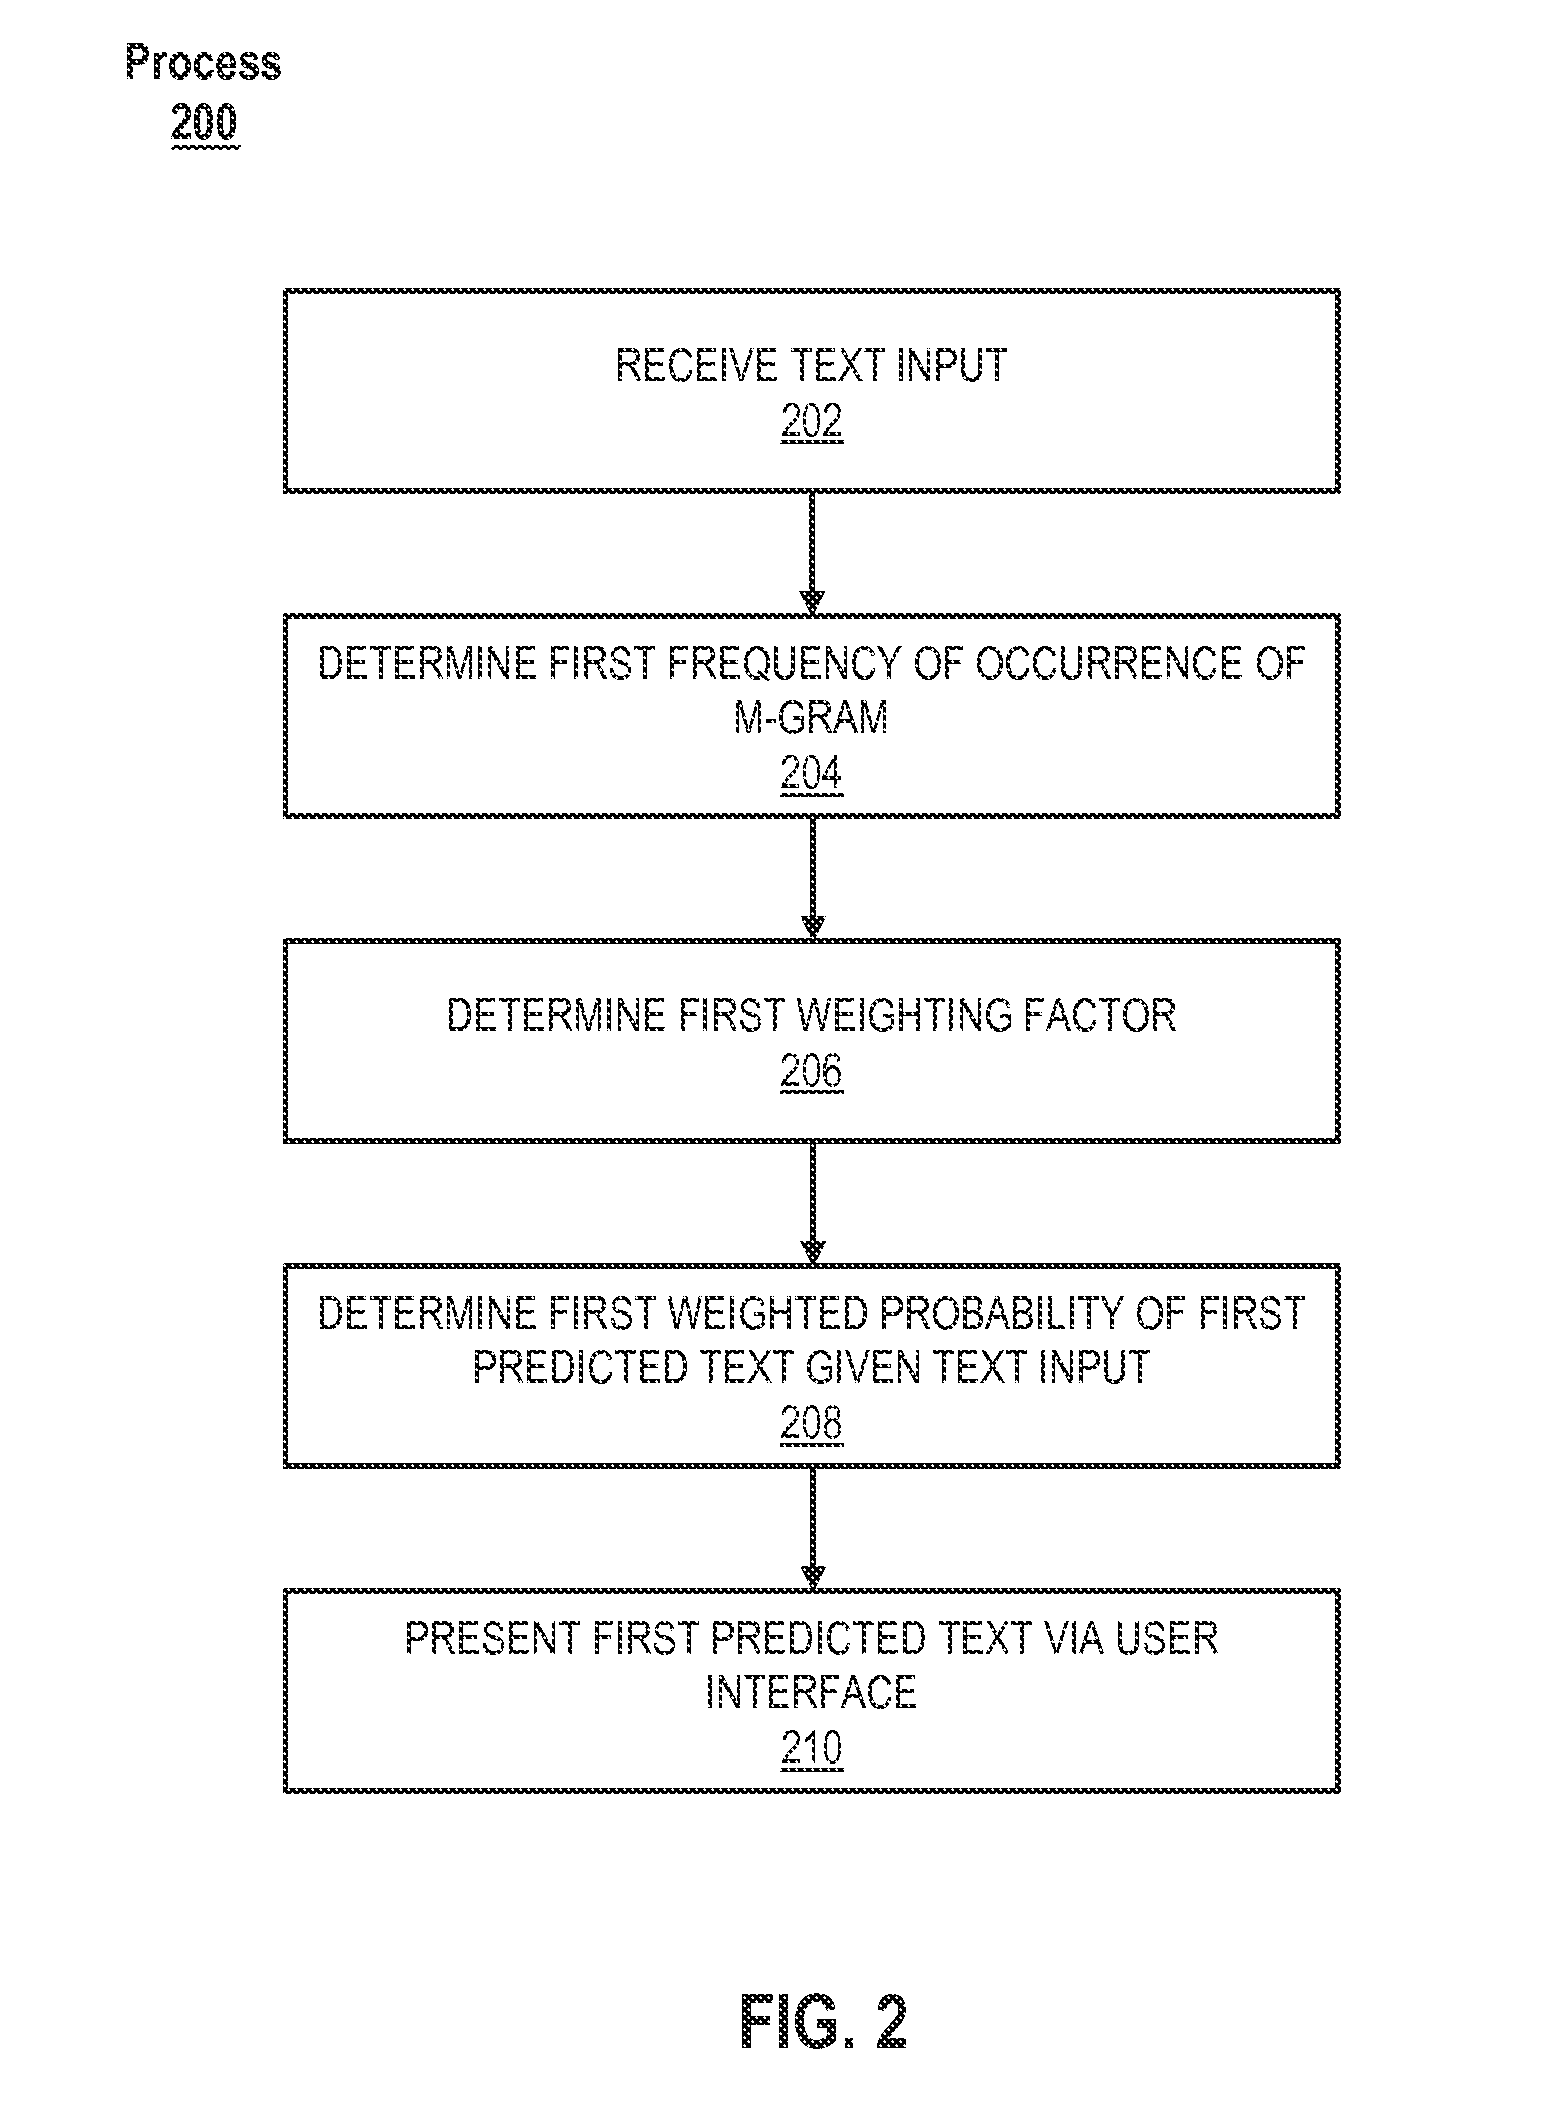 Us20150347382a1 predictive text input google patents fandeluxe Image collections